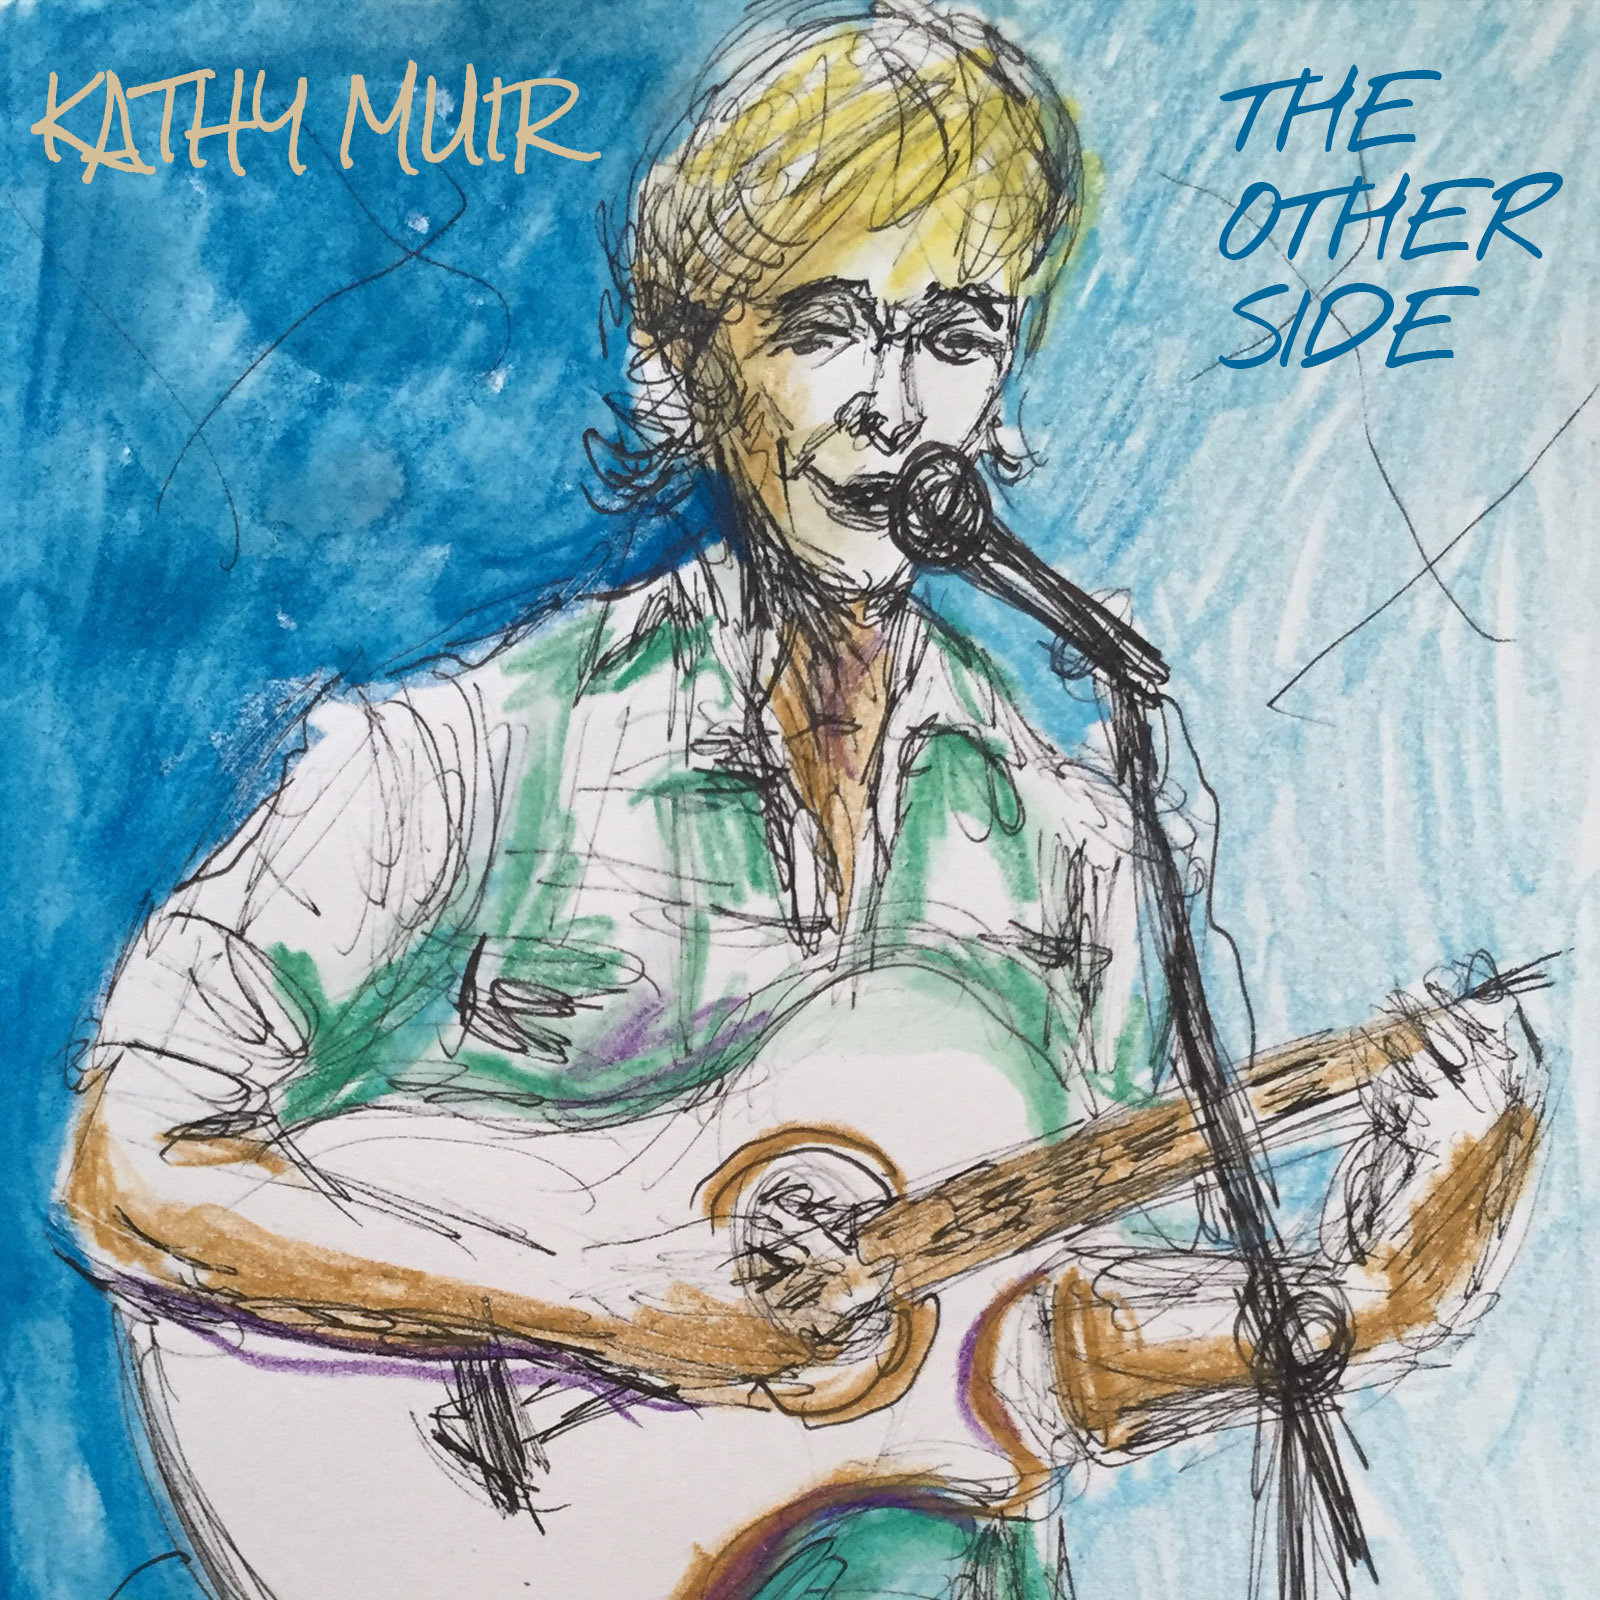 Sketch by Susan Carson, performing The Other Side